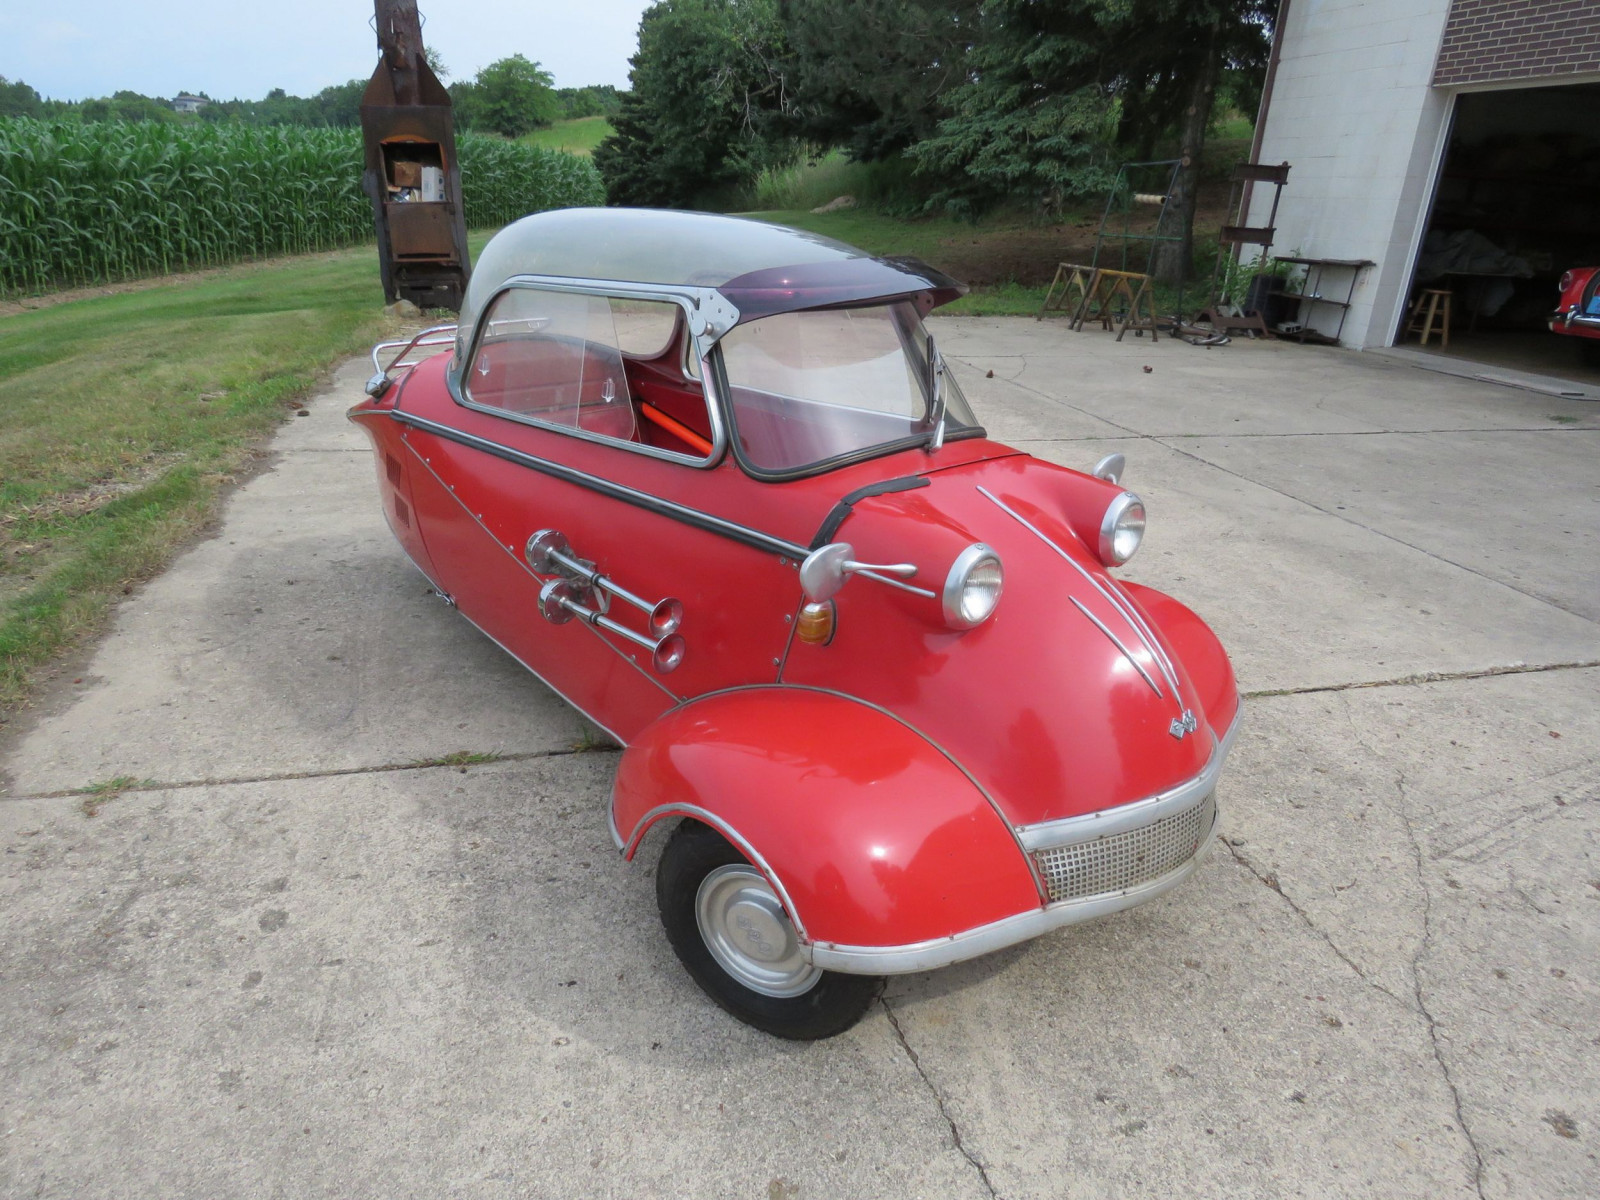 1959 Messerschmitt      KR-200 BubbleTop Coupe - Image 3